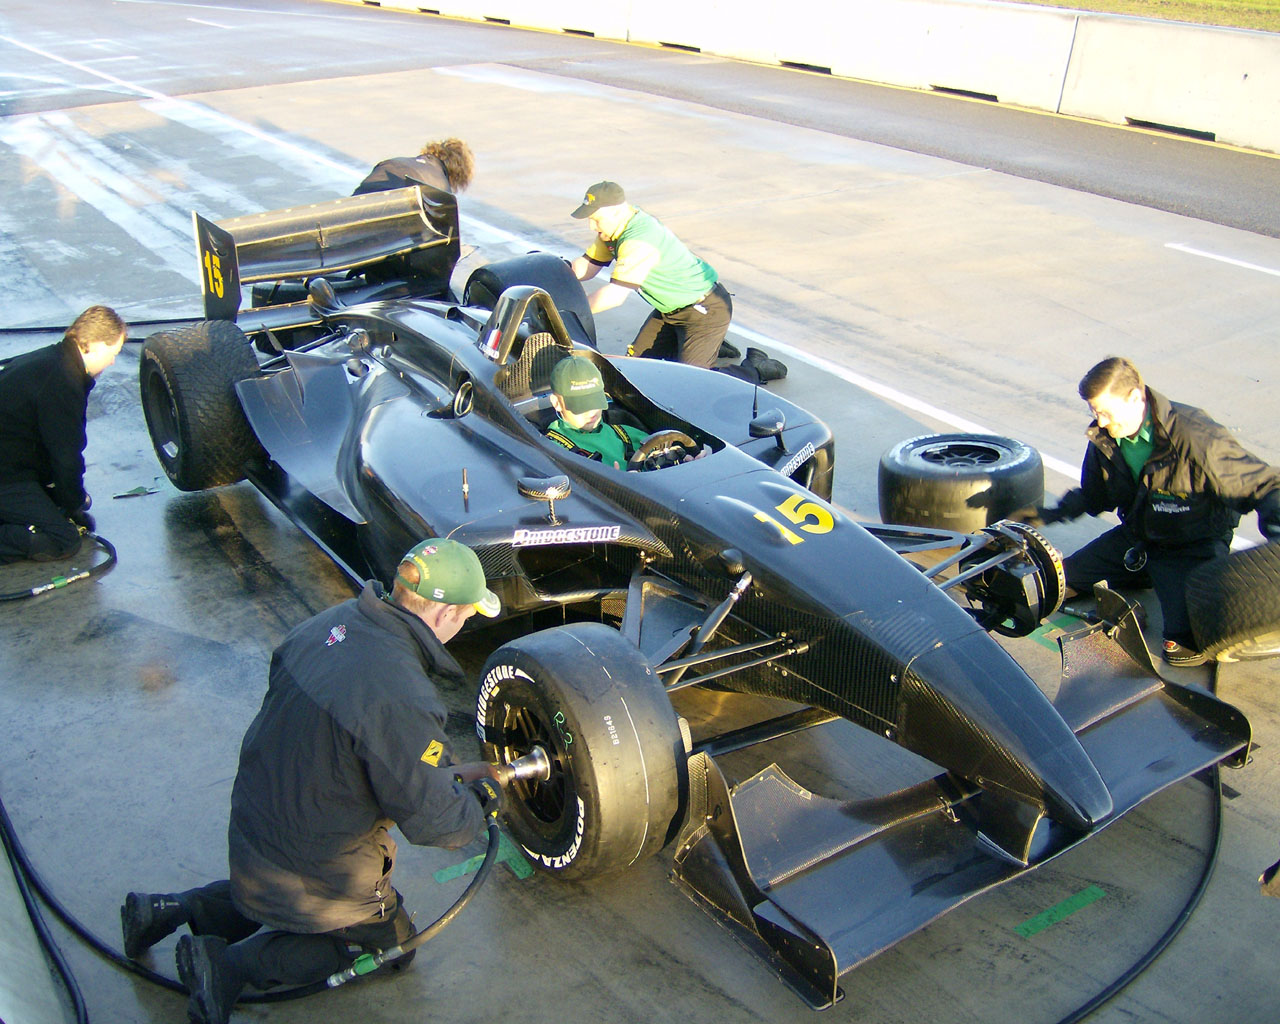 File:Unpainted Panoz DP01 Champ Car-crwp.jpg - Wikimedia Commons